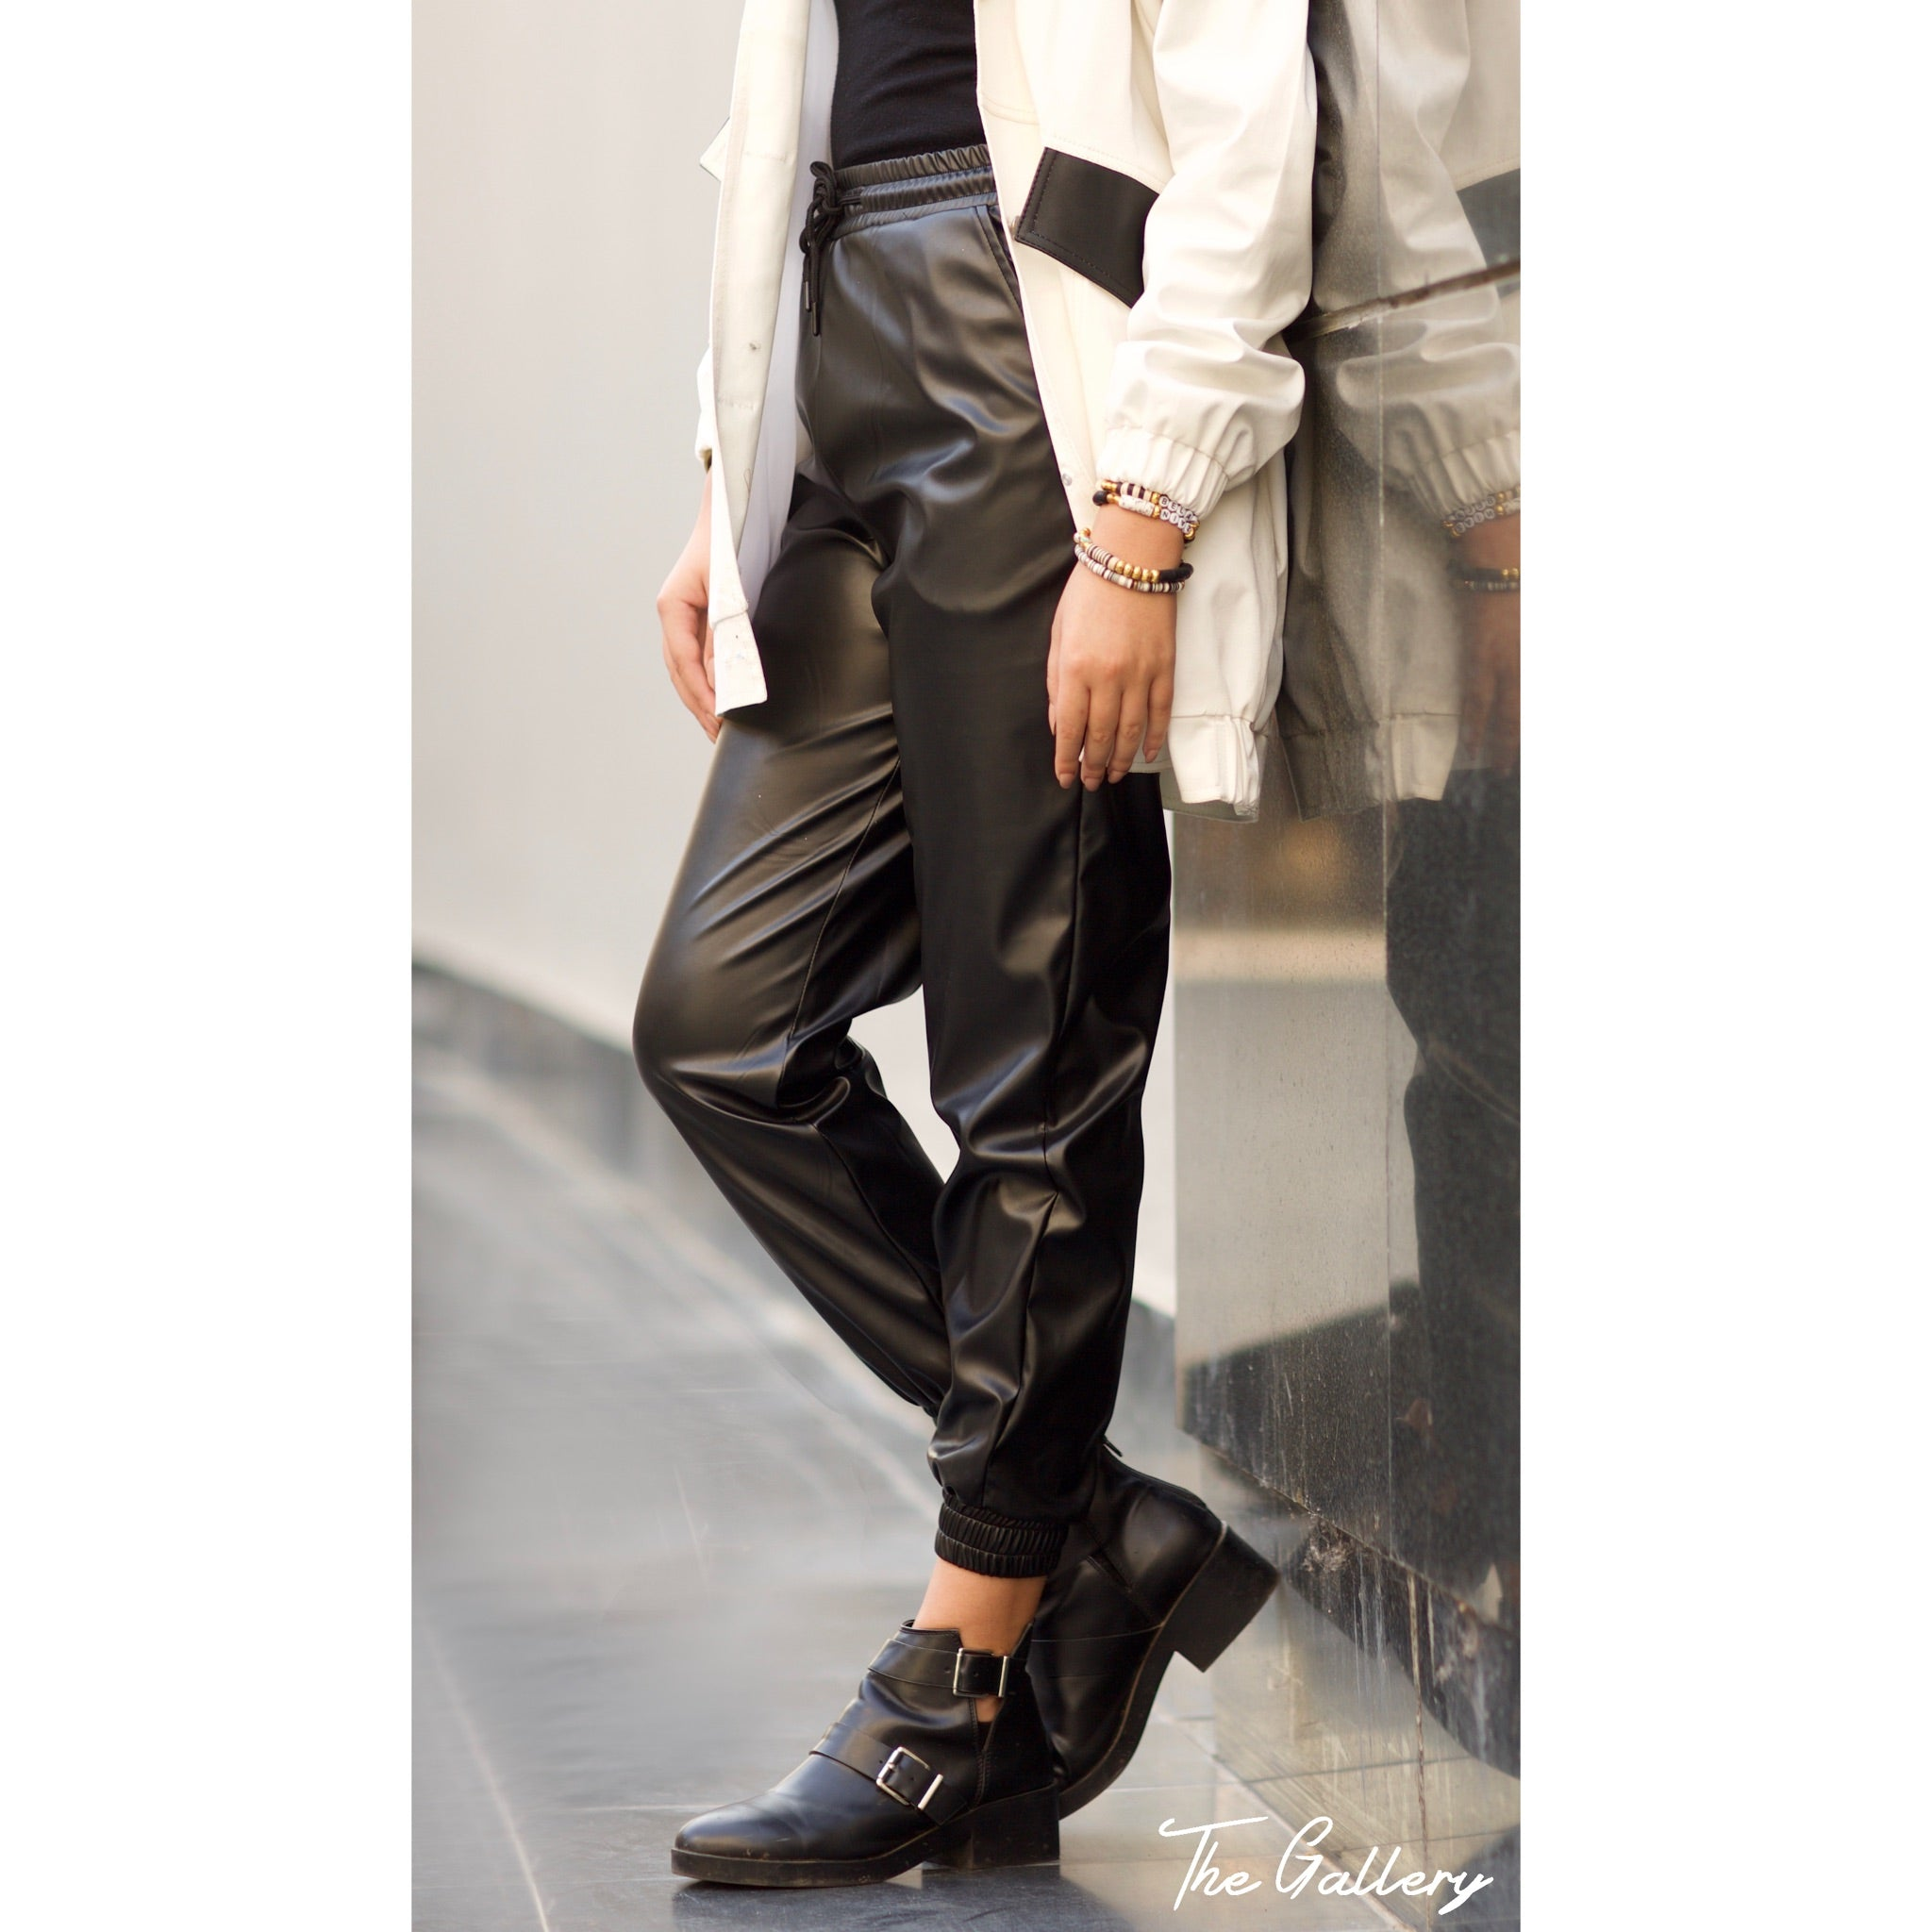 Black leather jogging pants